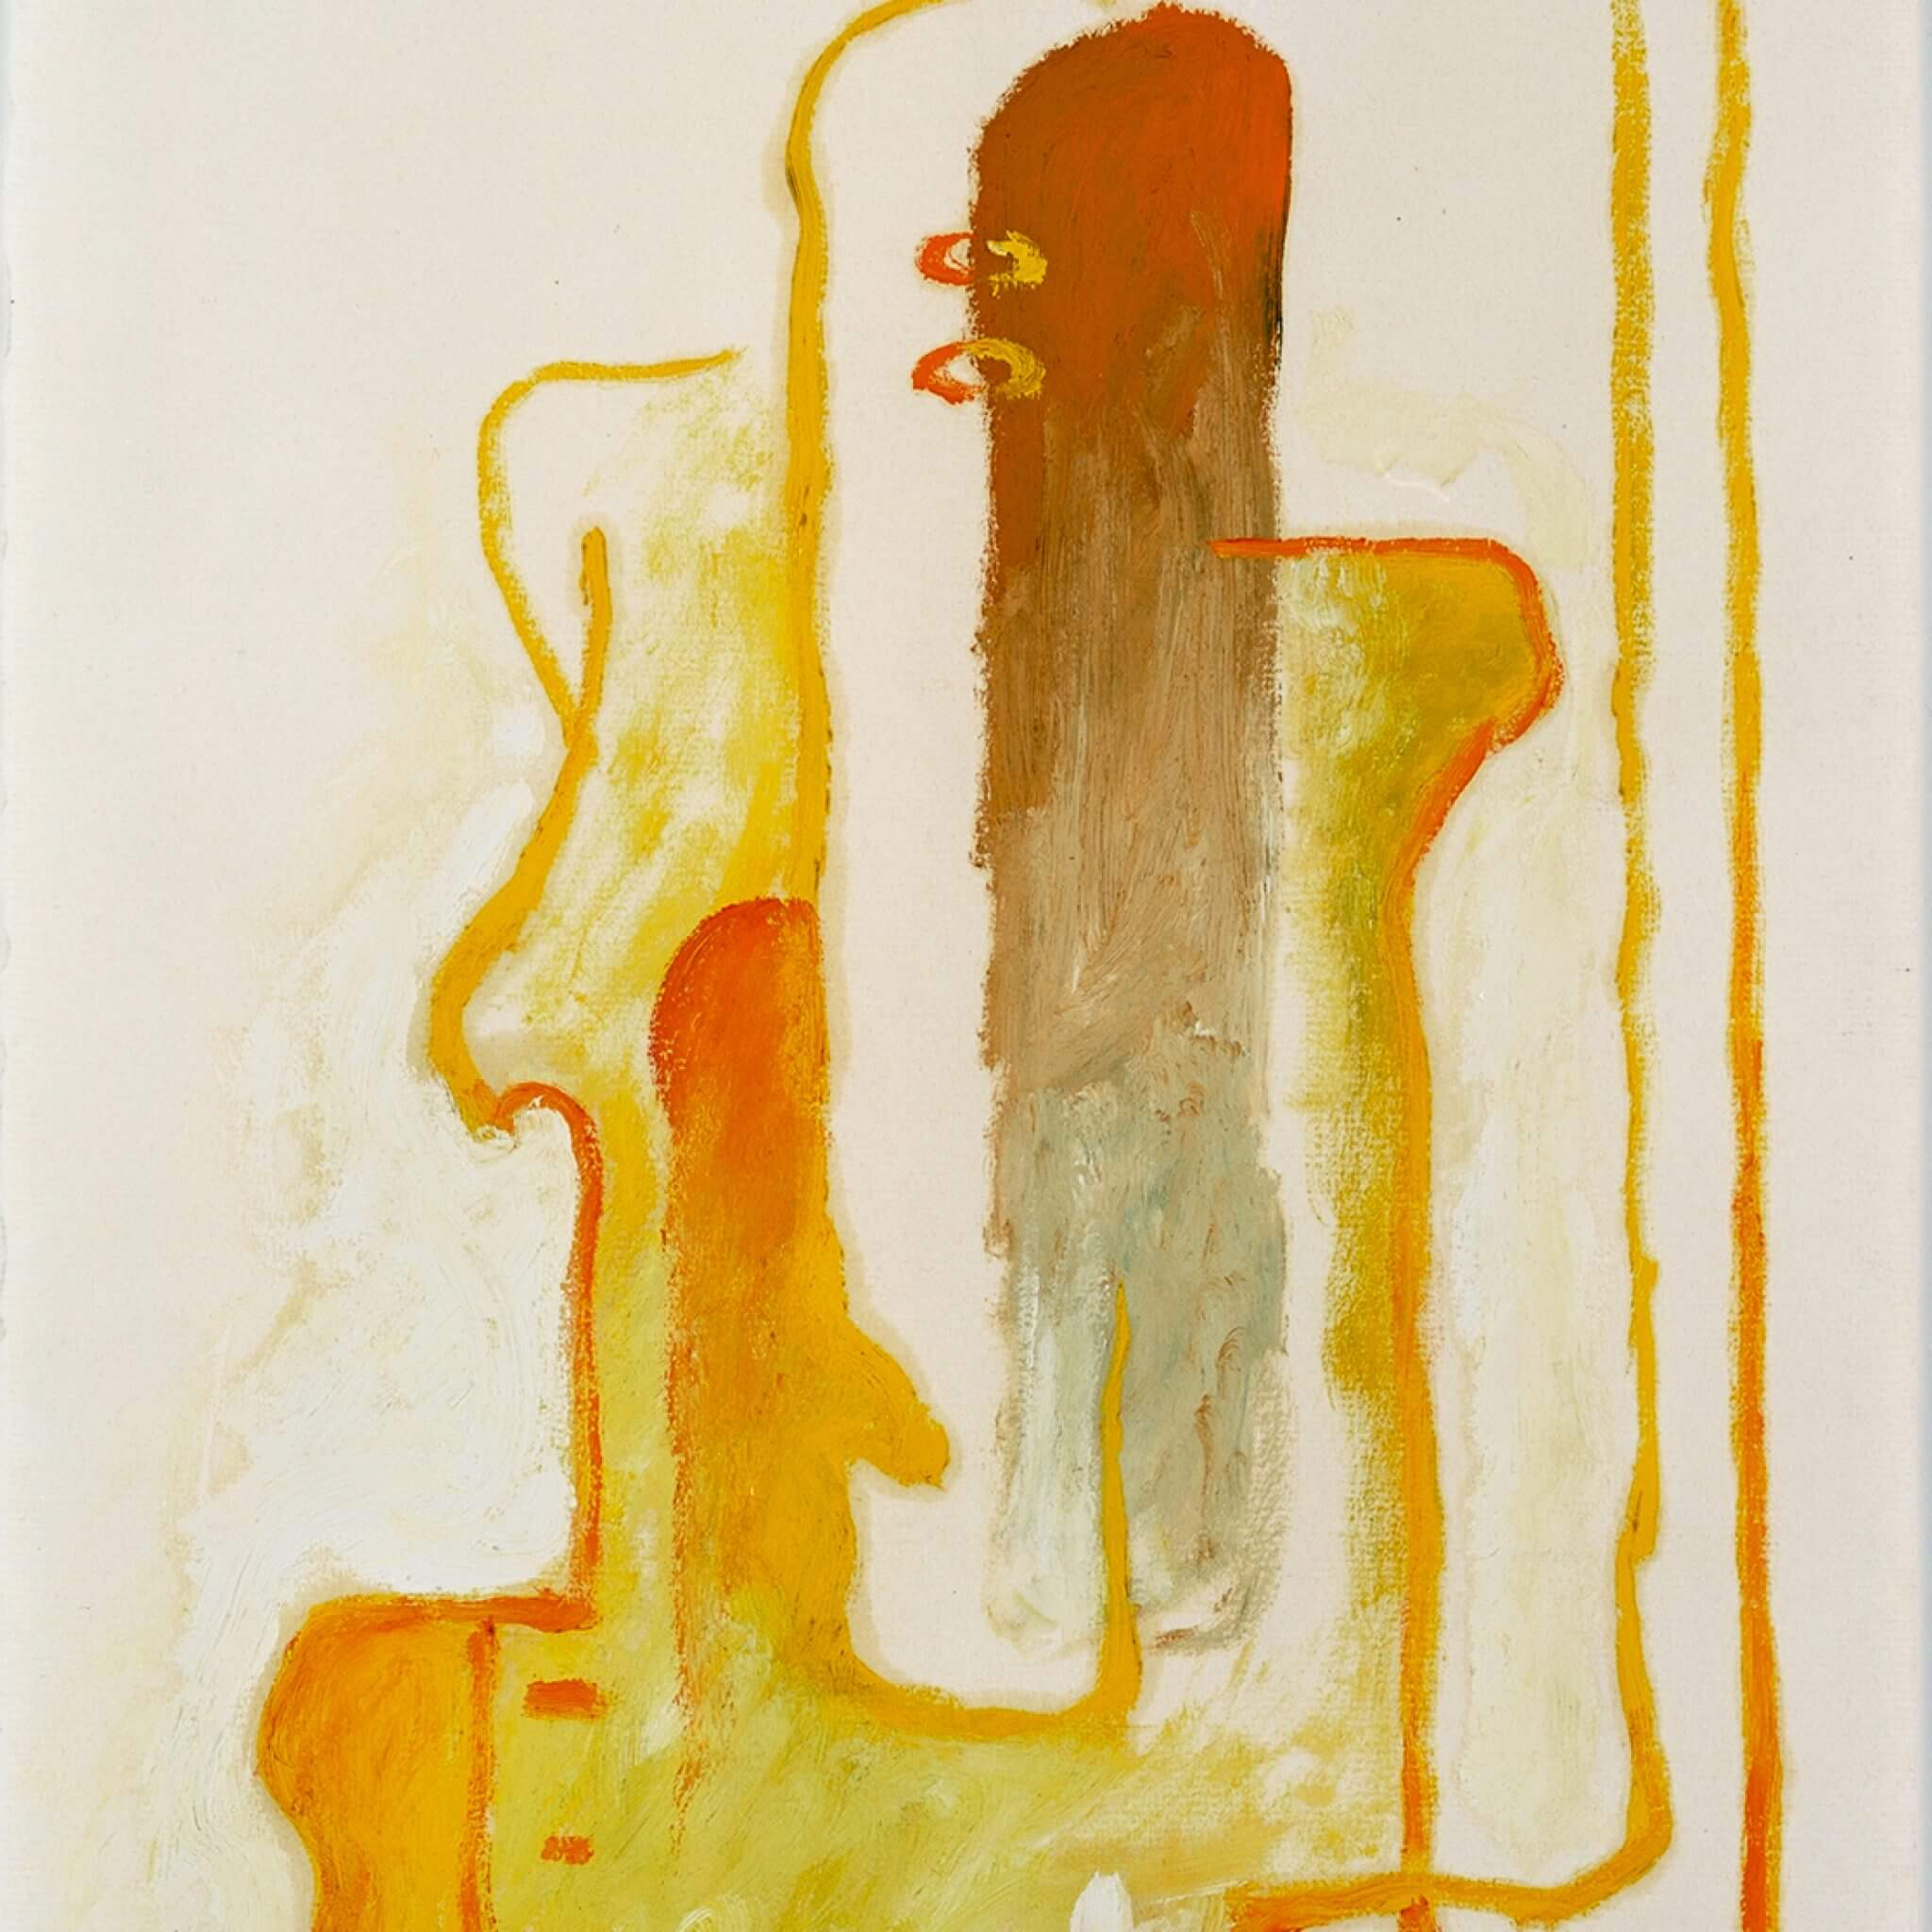 Abstract oil painting on paper with red, orange, yellow, and tan paint